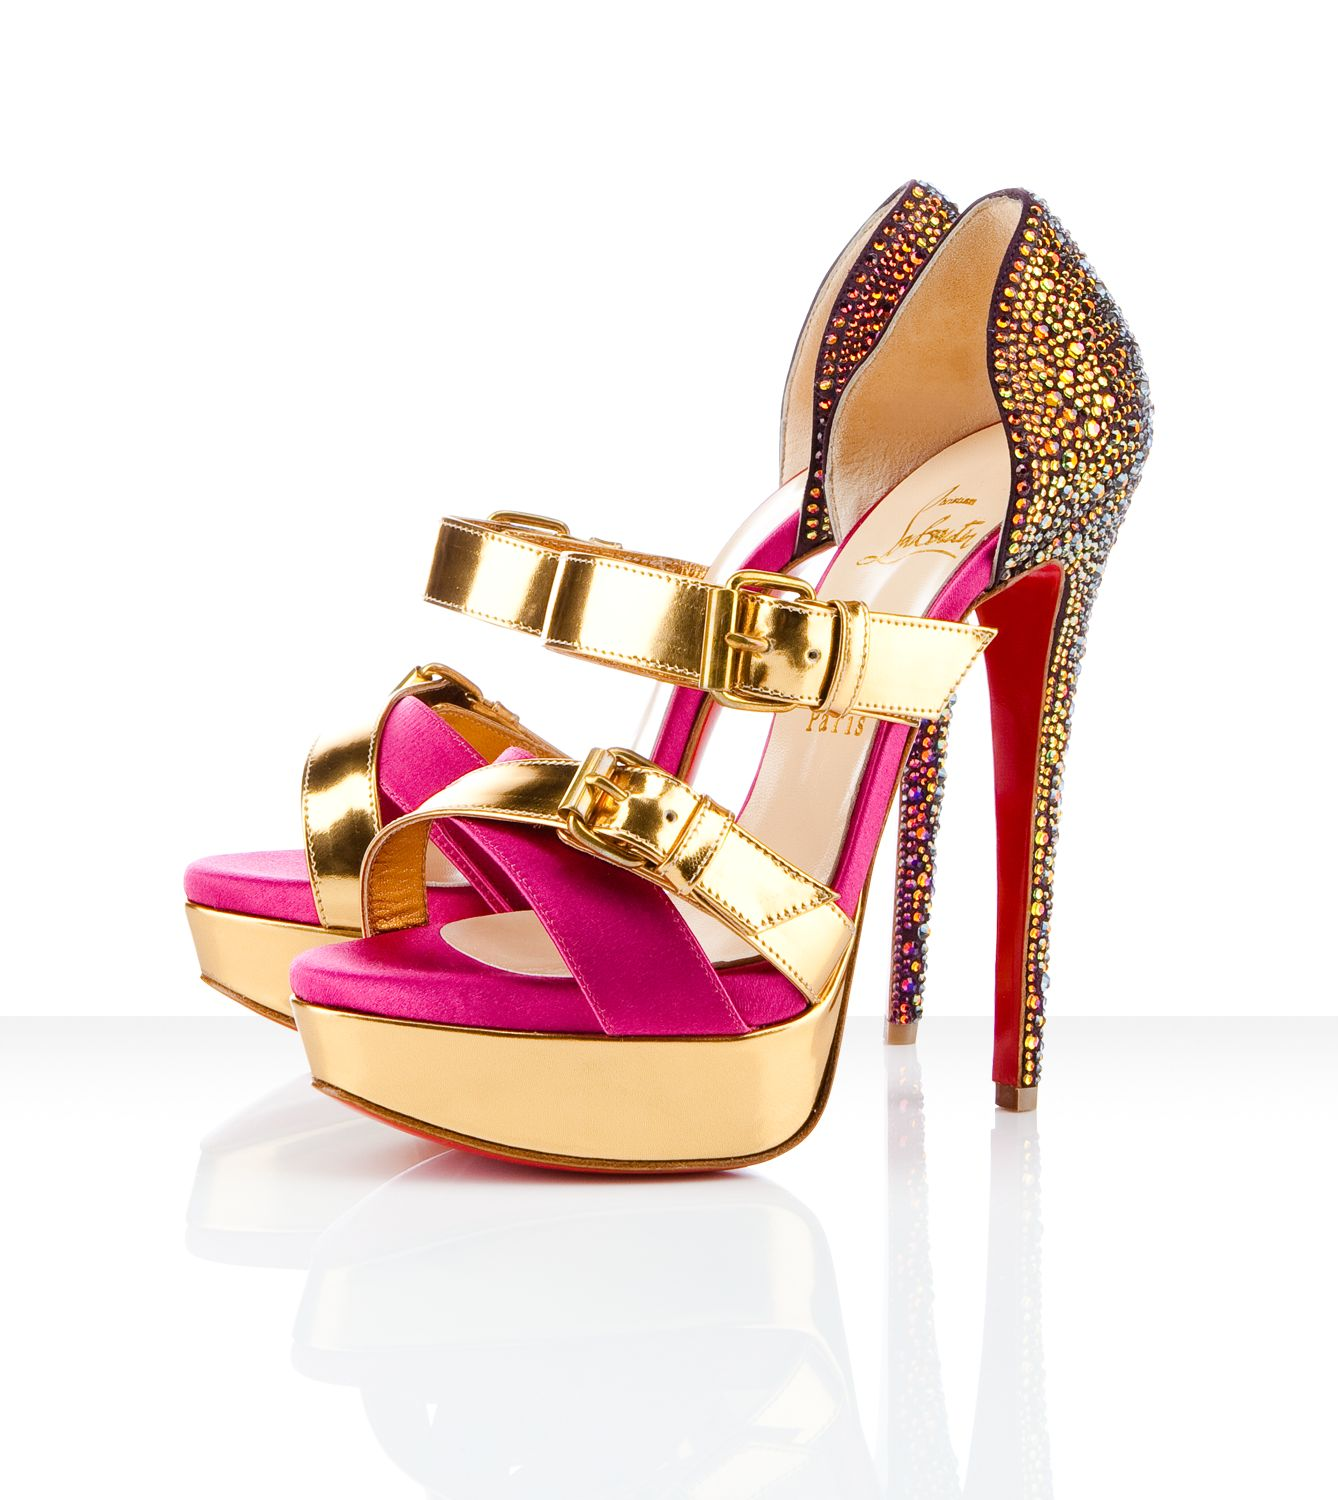 Luxury Brands Wishlist: Christian Louboutin sentite en las nubes!